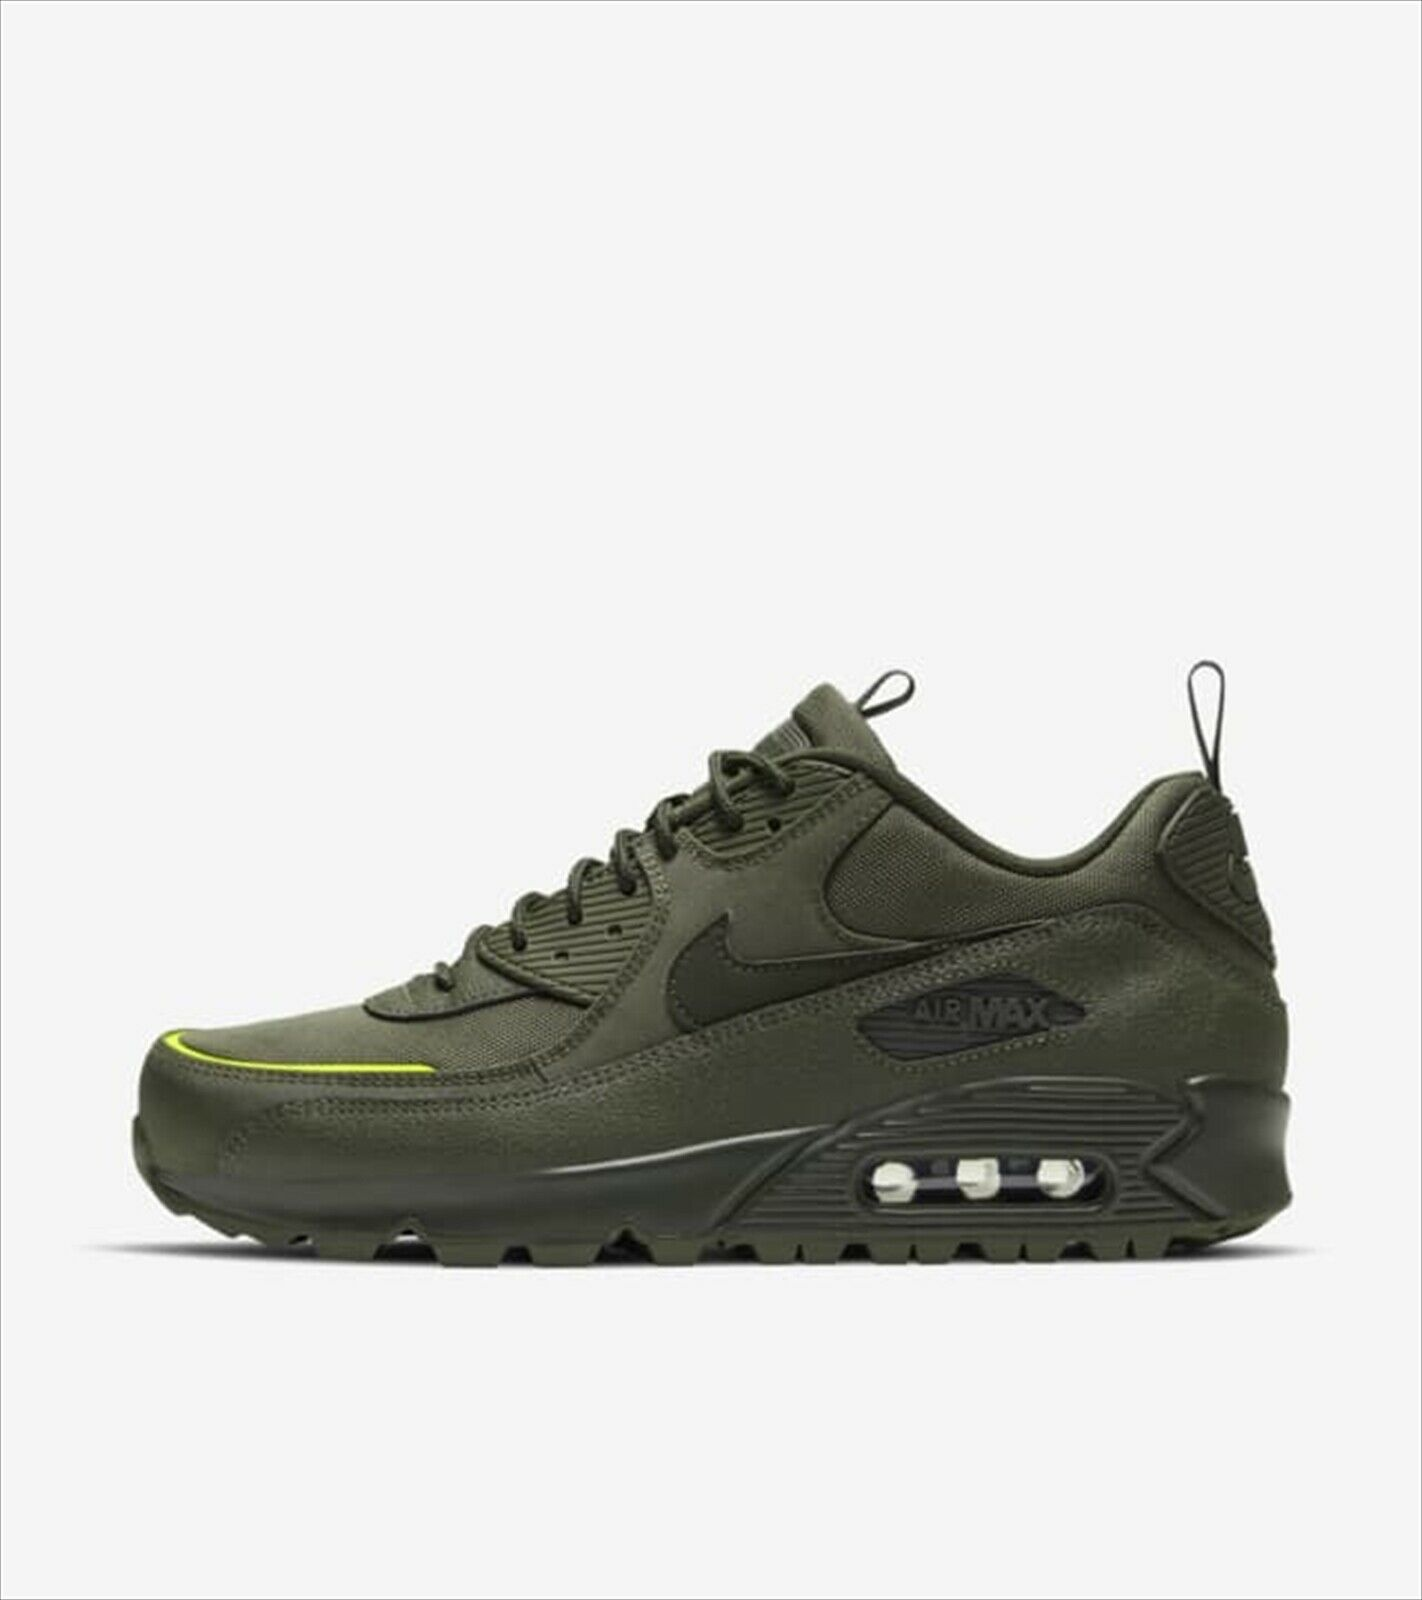 Size 9 - Nike Air Max 90 Surplus Green 2020 for sale online   eBay